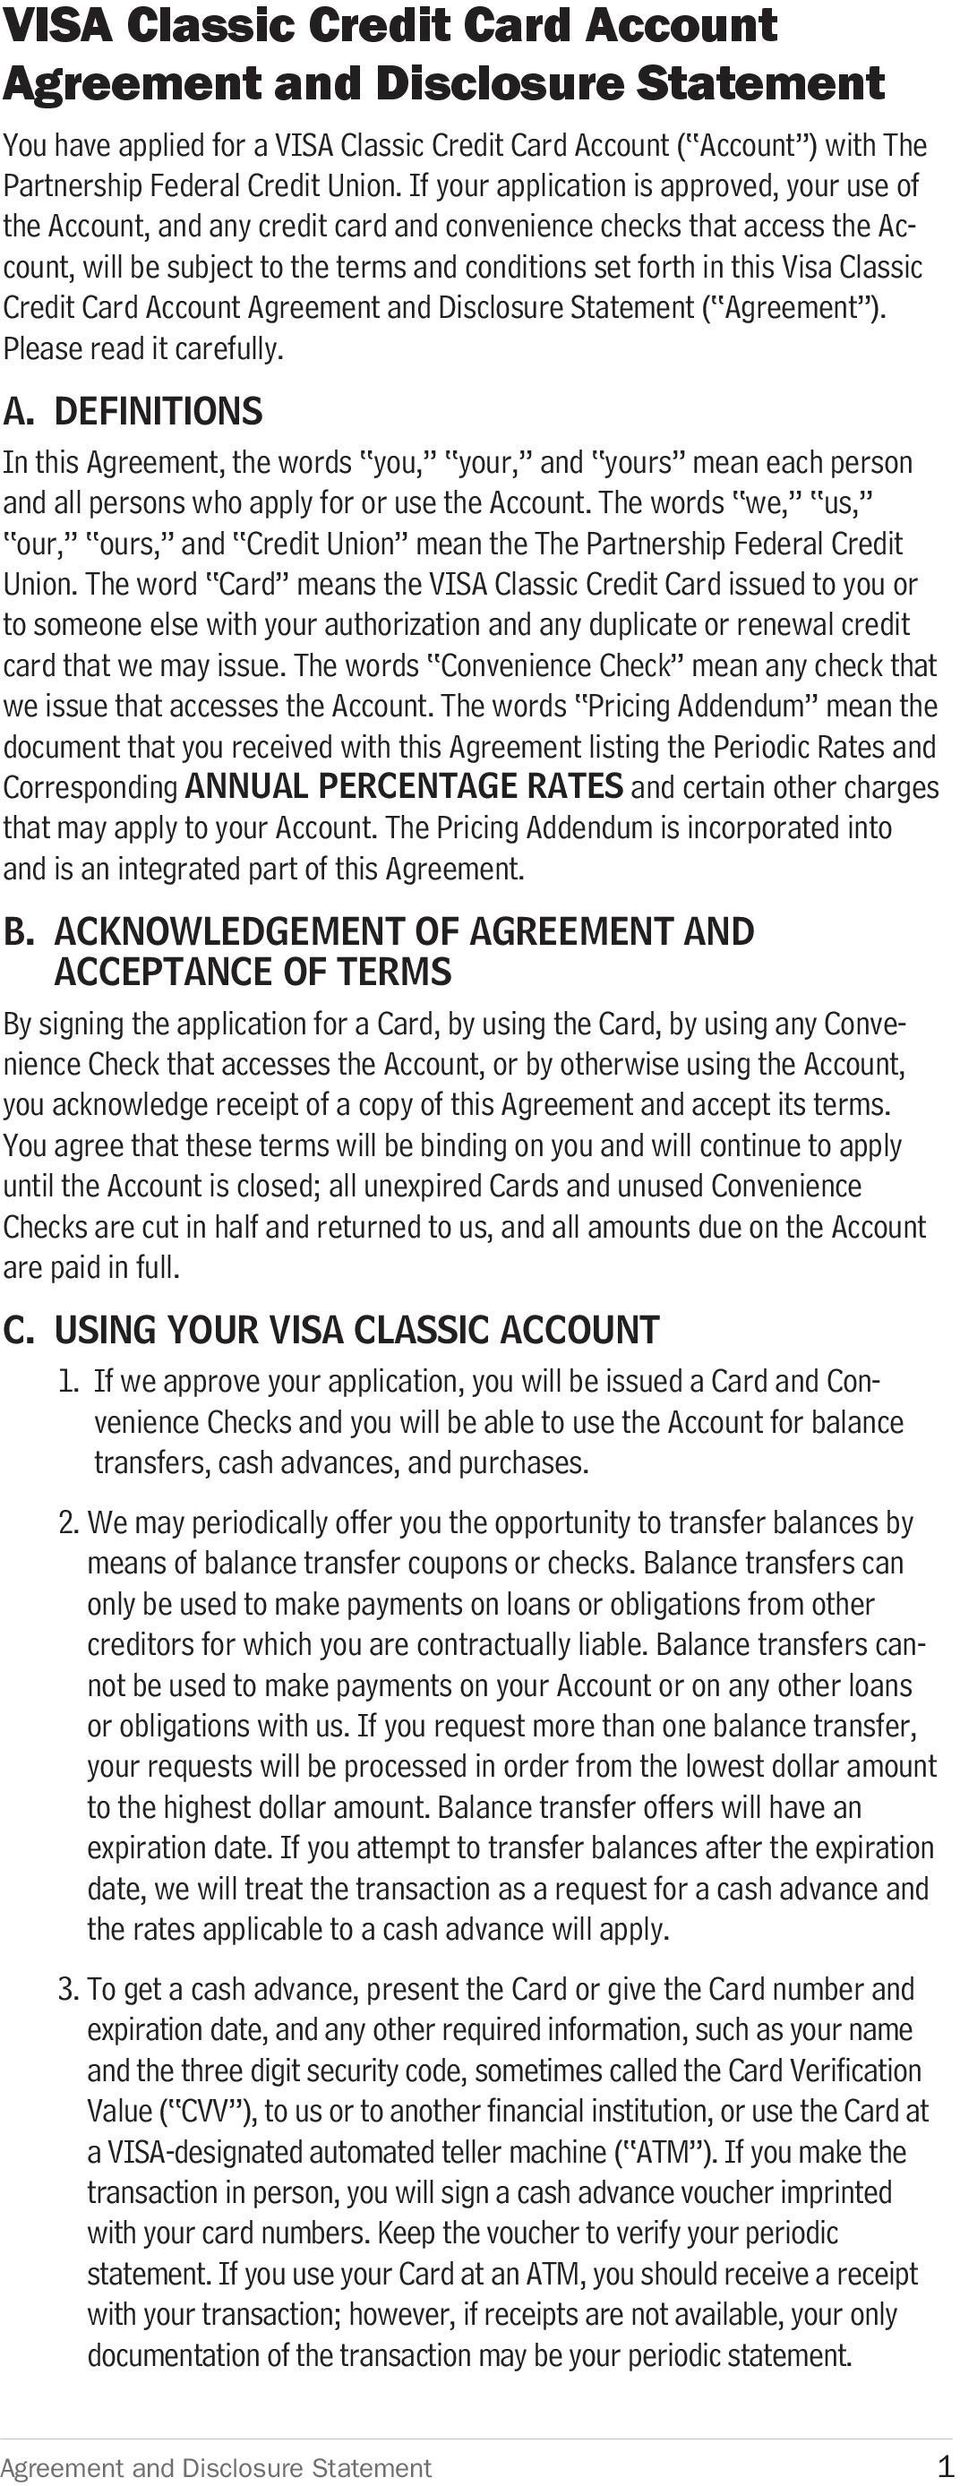 Classic Credit Card Account ( Agreement ). Please read it carefully. A. DEFINITIONS In this Agreement, the words you, your, and yours mean each person and all persons who apply for or use the Account.